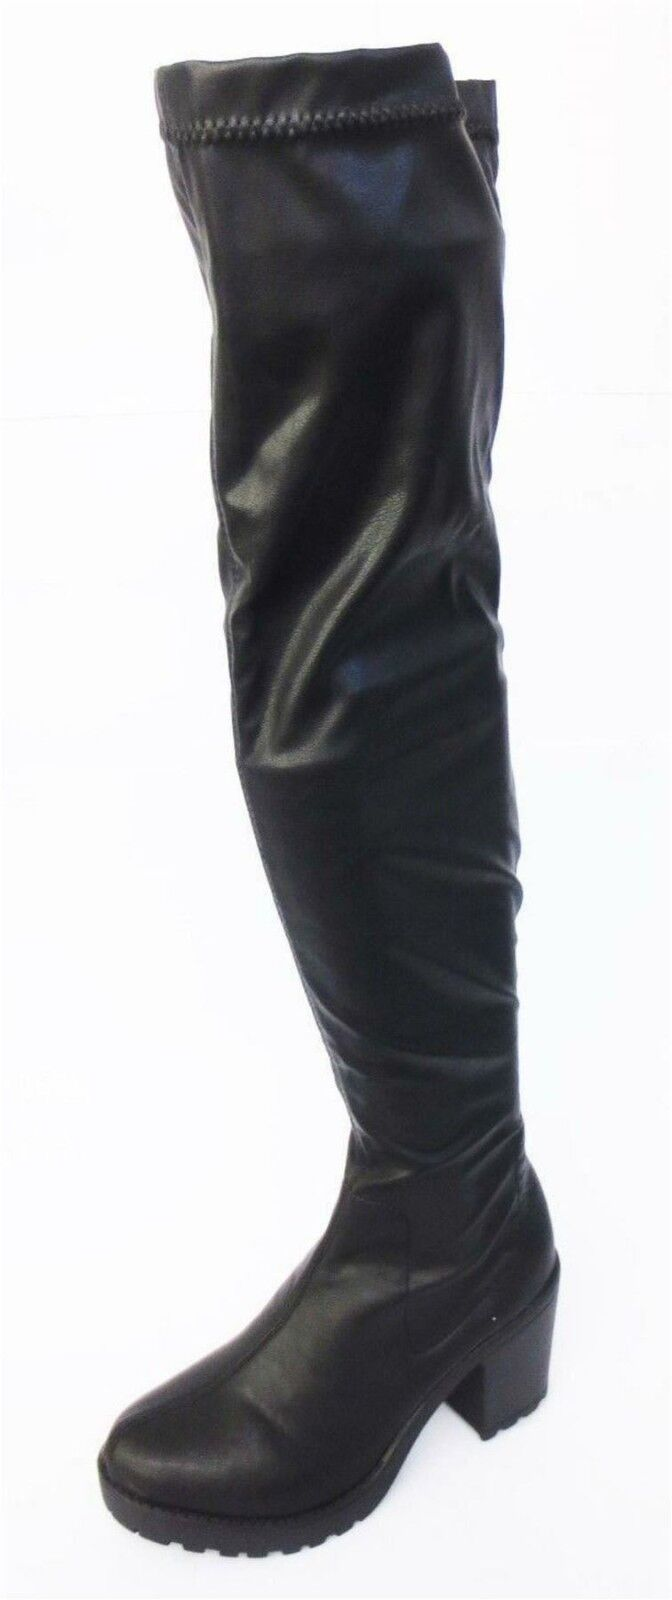 Ladies F50487 black knee high pu boots by SPOT ON Sale Now £19.99